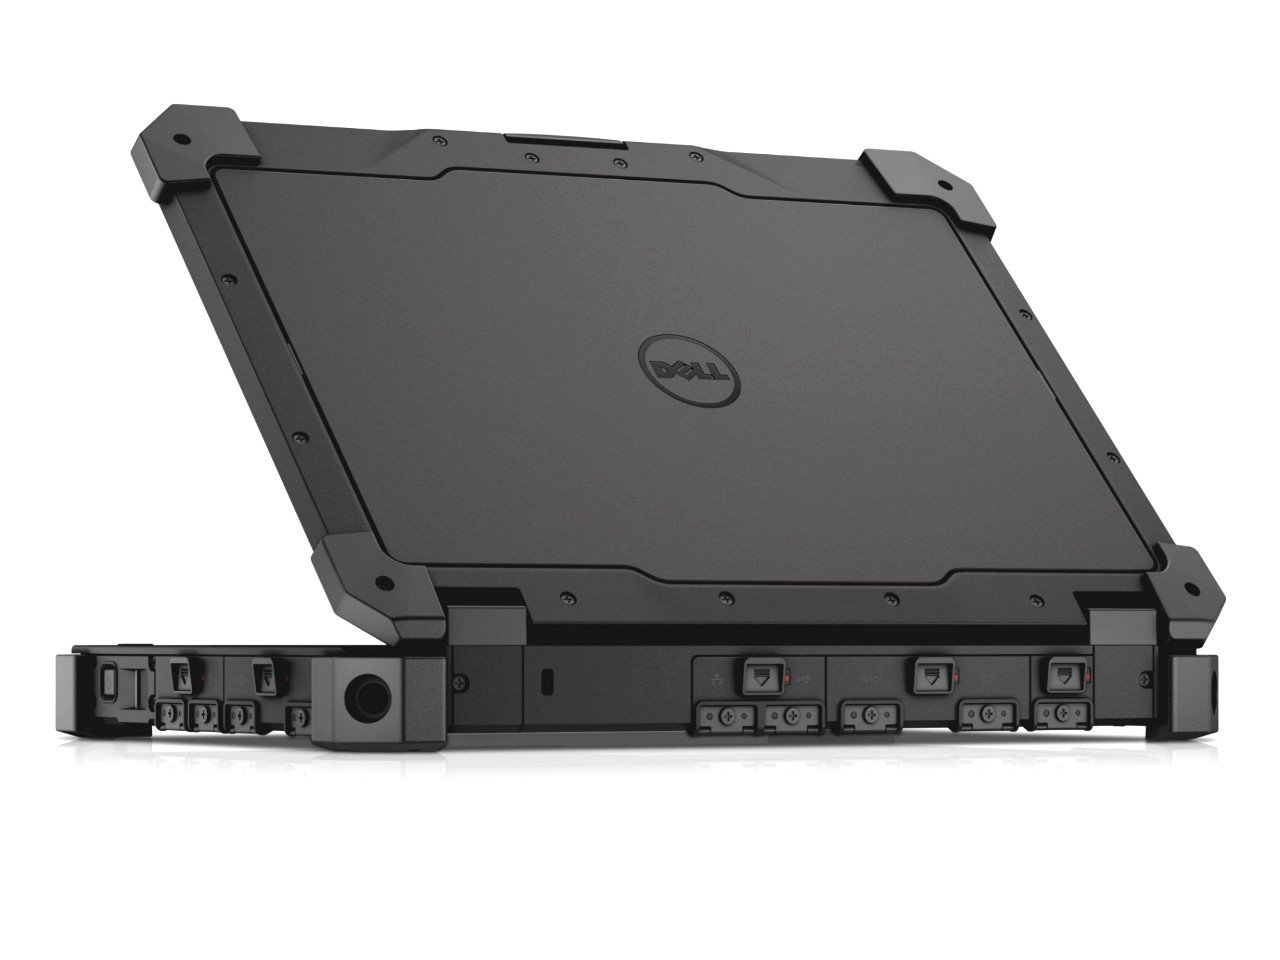 dell latitude 12 rugged extreme 7204 i5 convertible notebook